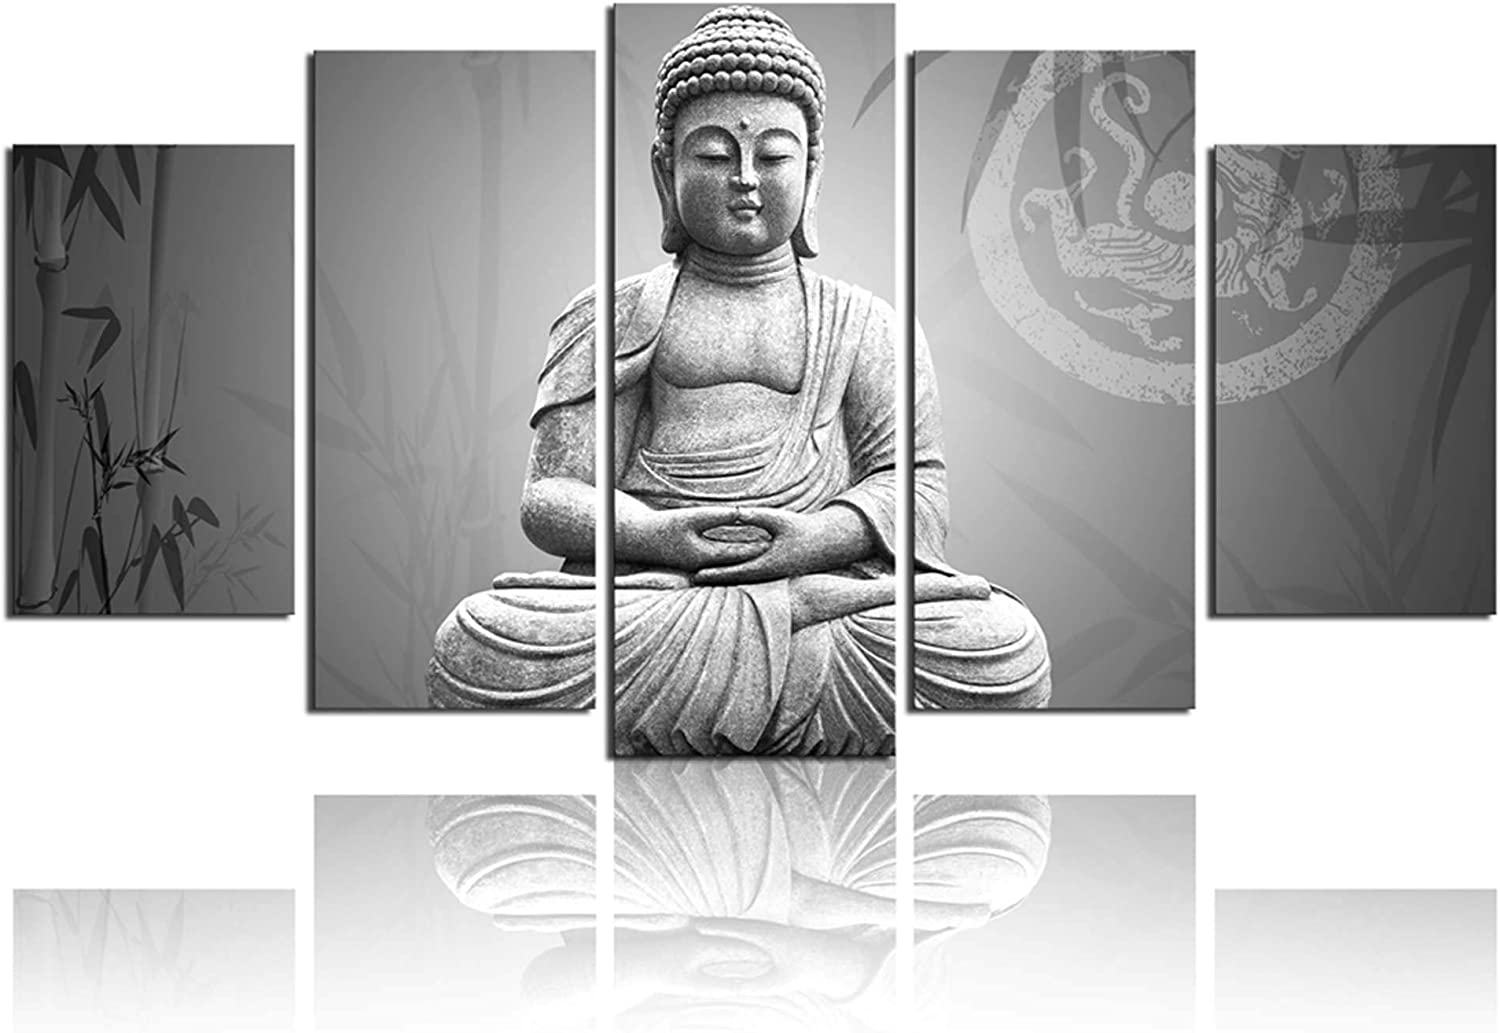 ARTLAND Modern Landscape Black and White Buddha Print on Canvas Wall Art Decor with Frame